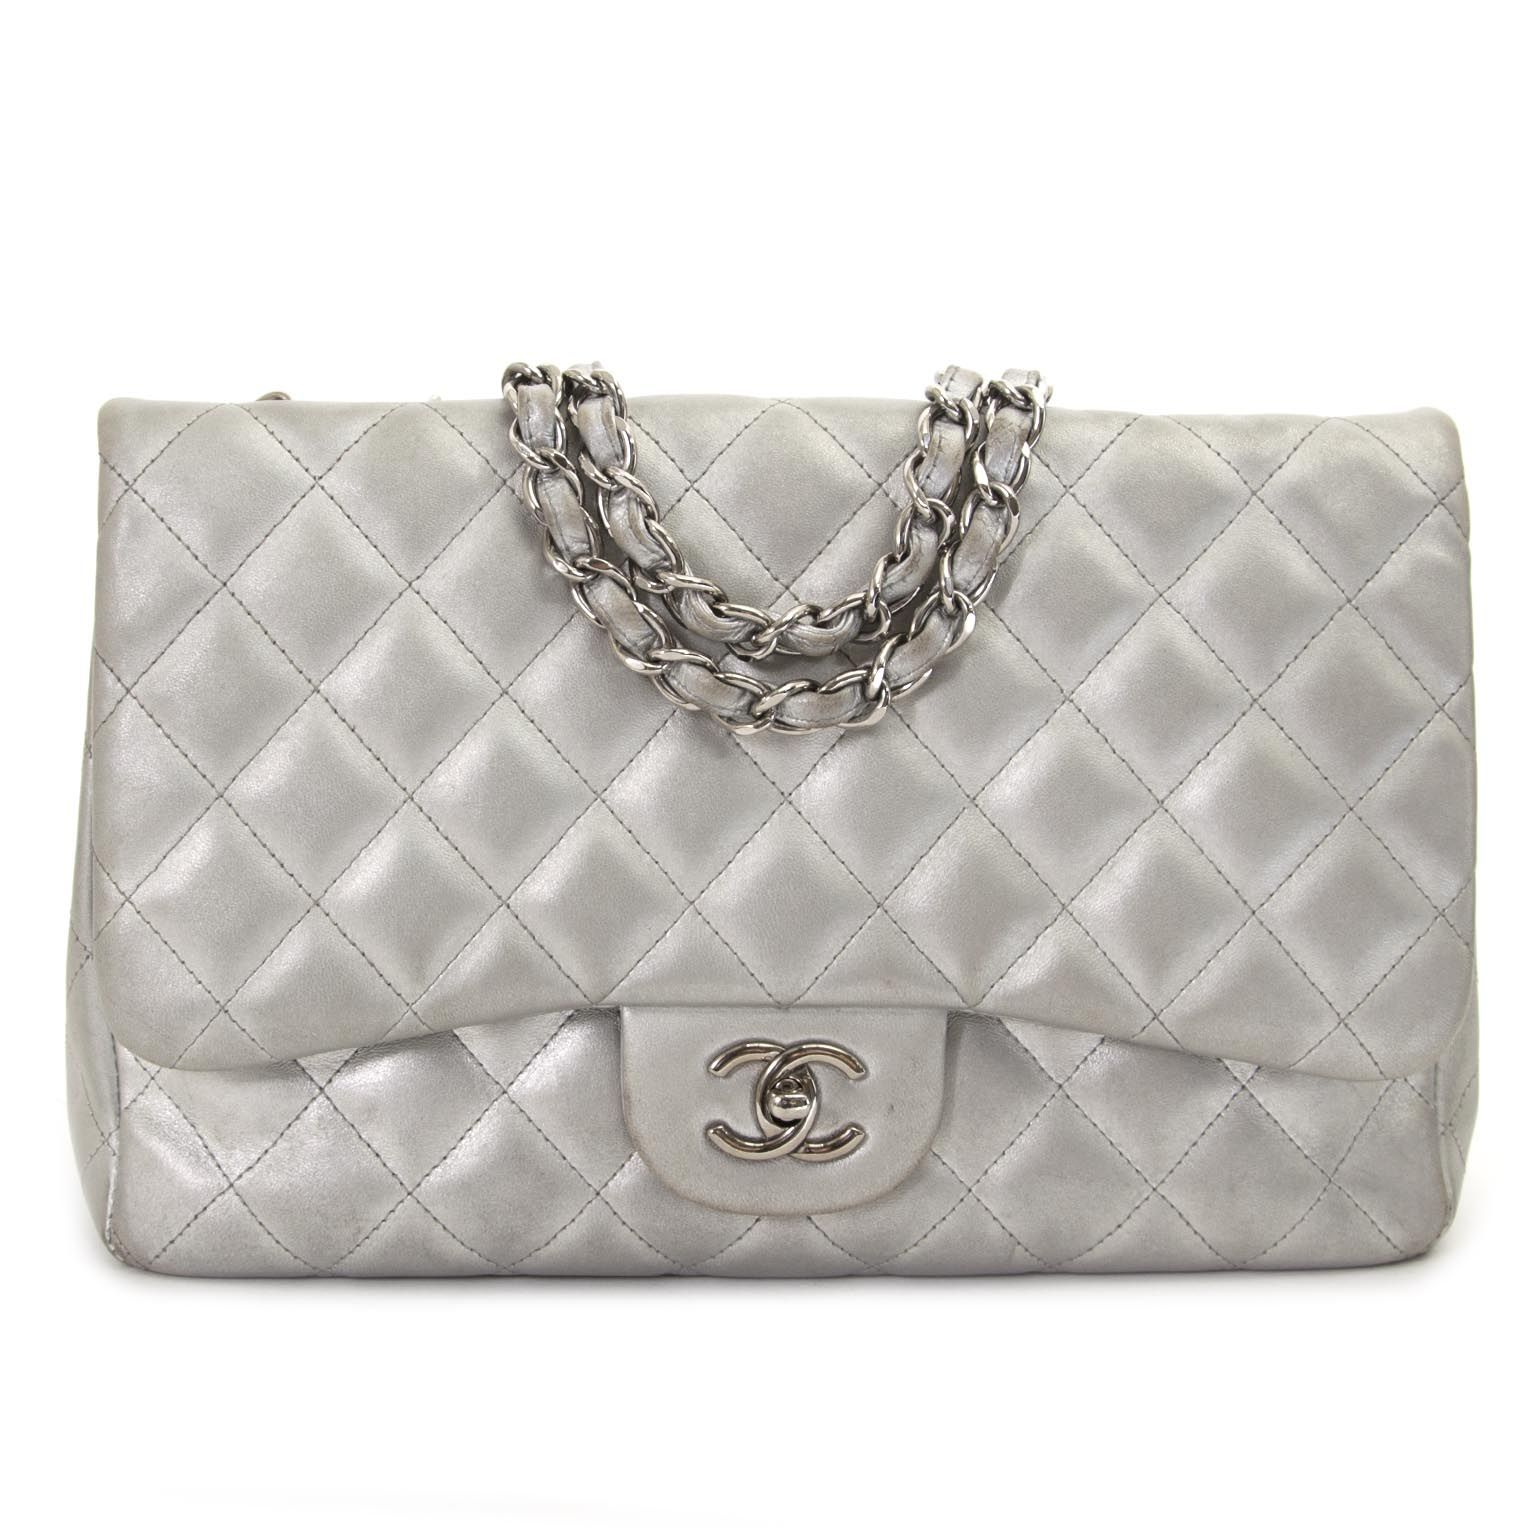 d162323c863d Chanel Jumbo Silver Quilted Metallic Lambskin Classic Flap Bag now for sale  at labellov vintage webshop.